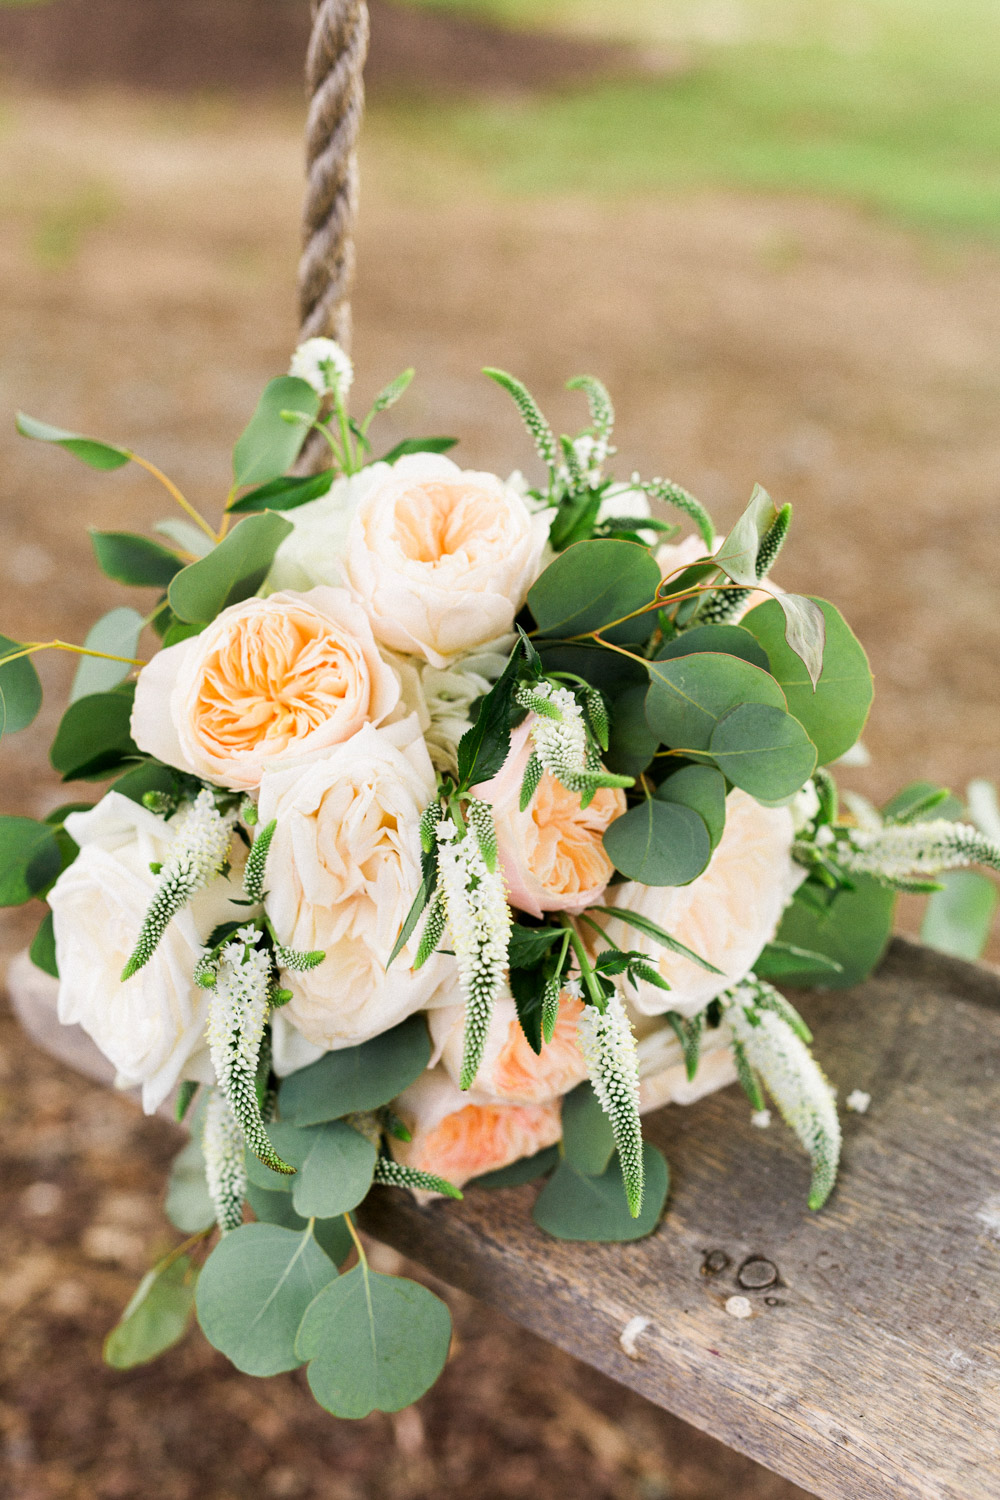 peach peony and eucalyptus bouquet sits on an old rope swing